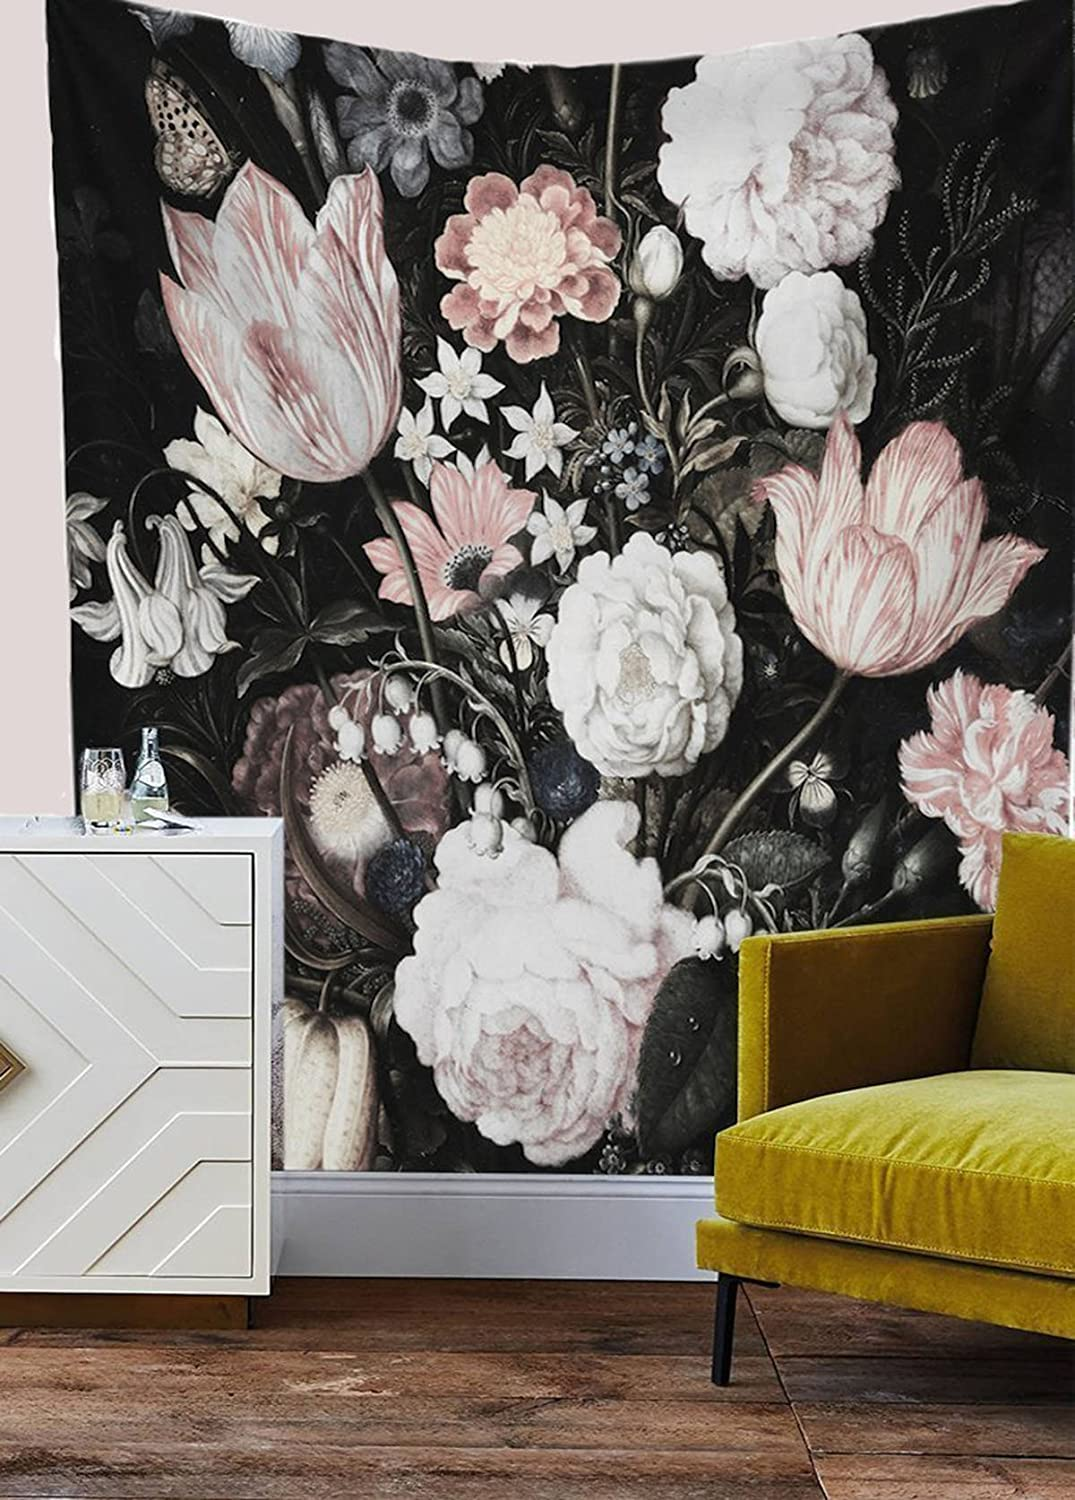 Shukqueen Tapestry, Black Blossoms Beautiful Flowers Wall Hanging Floral Tapestry Fabric Wallpaper Home Decor 51H x 60W